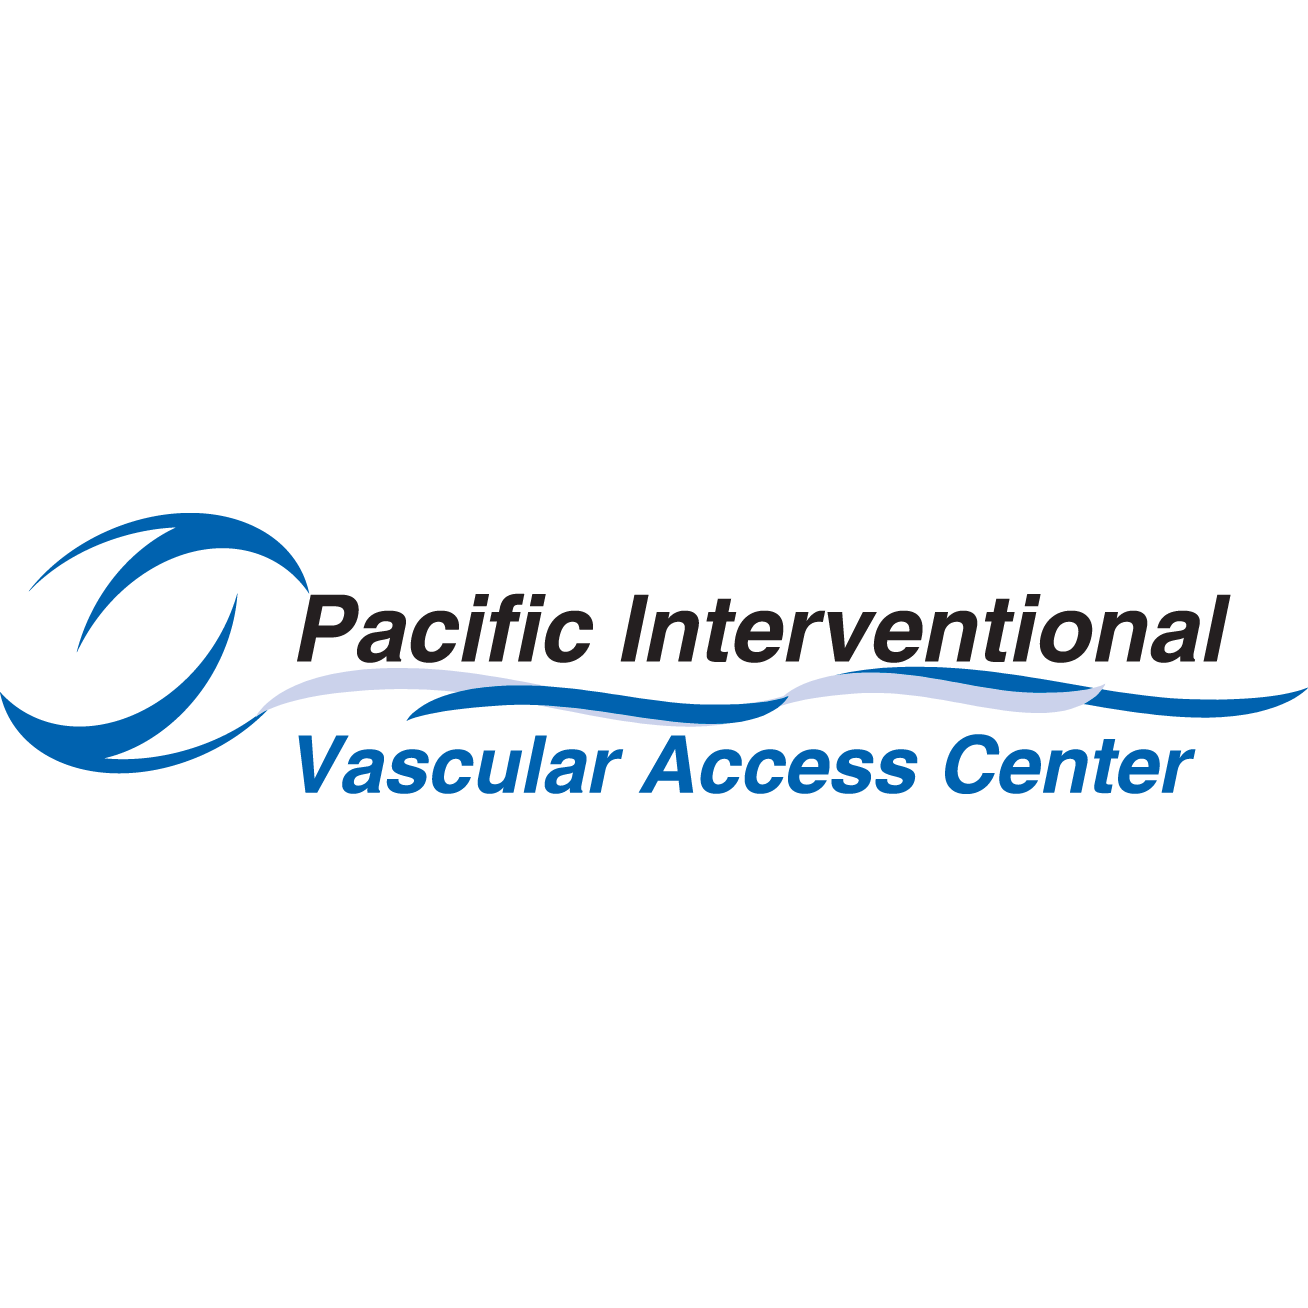 Pacific Interventional Vascular Access Center image 4